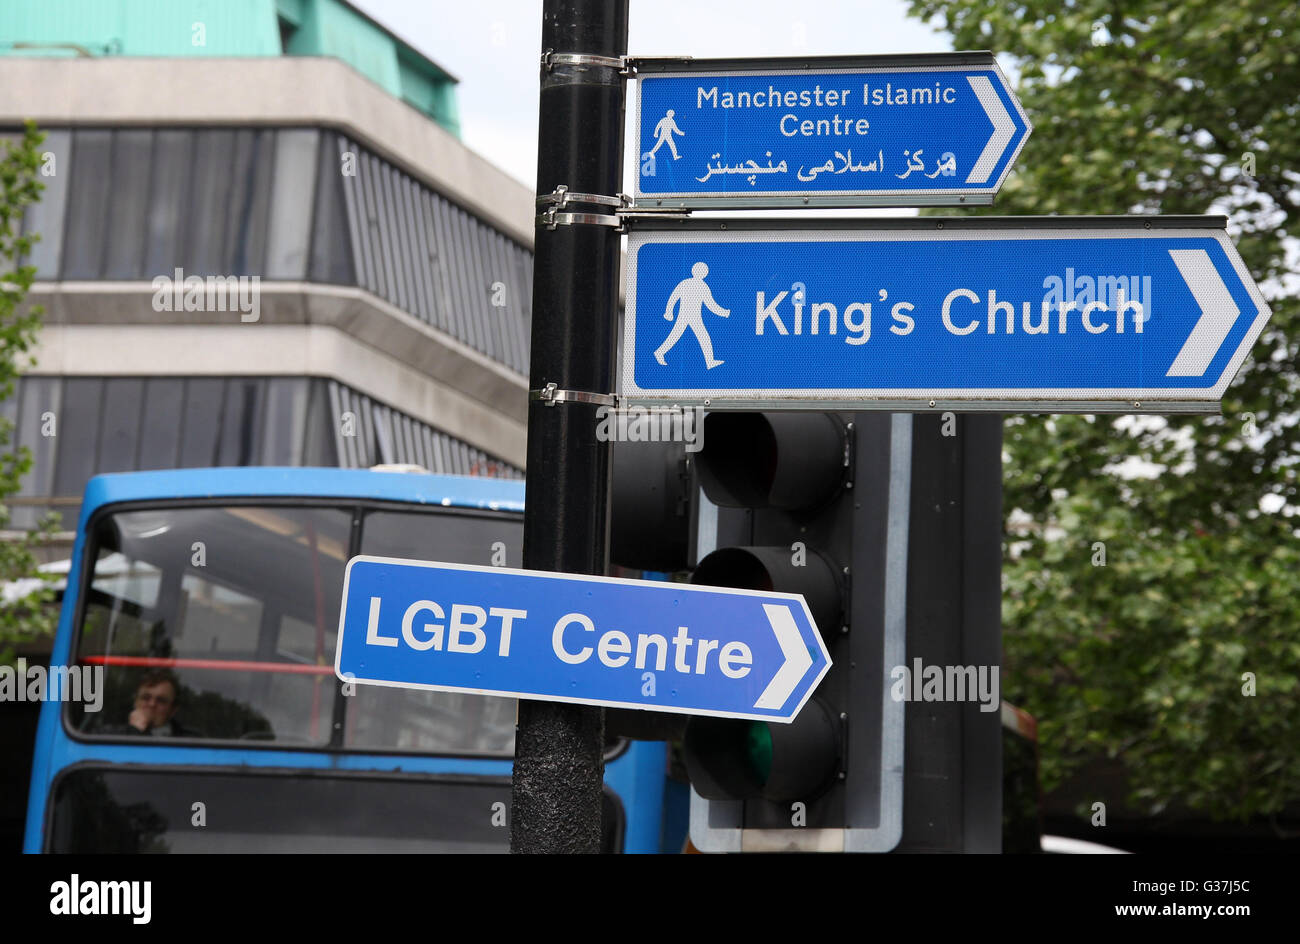 LGBT Centre Sign in Manchester - Stock Image